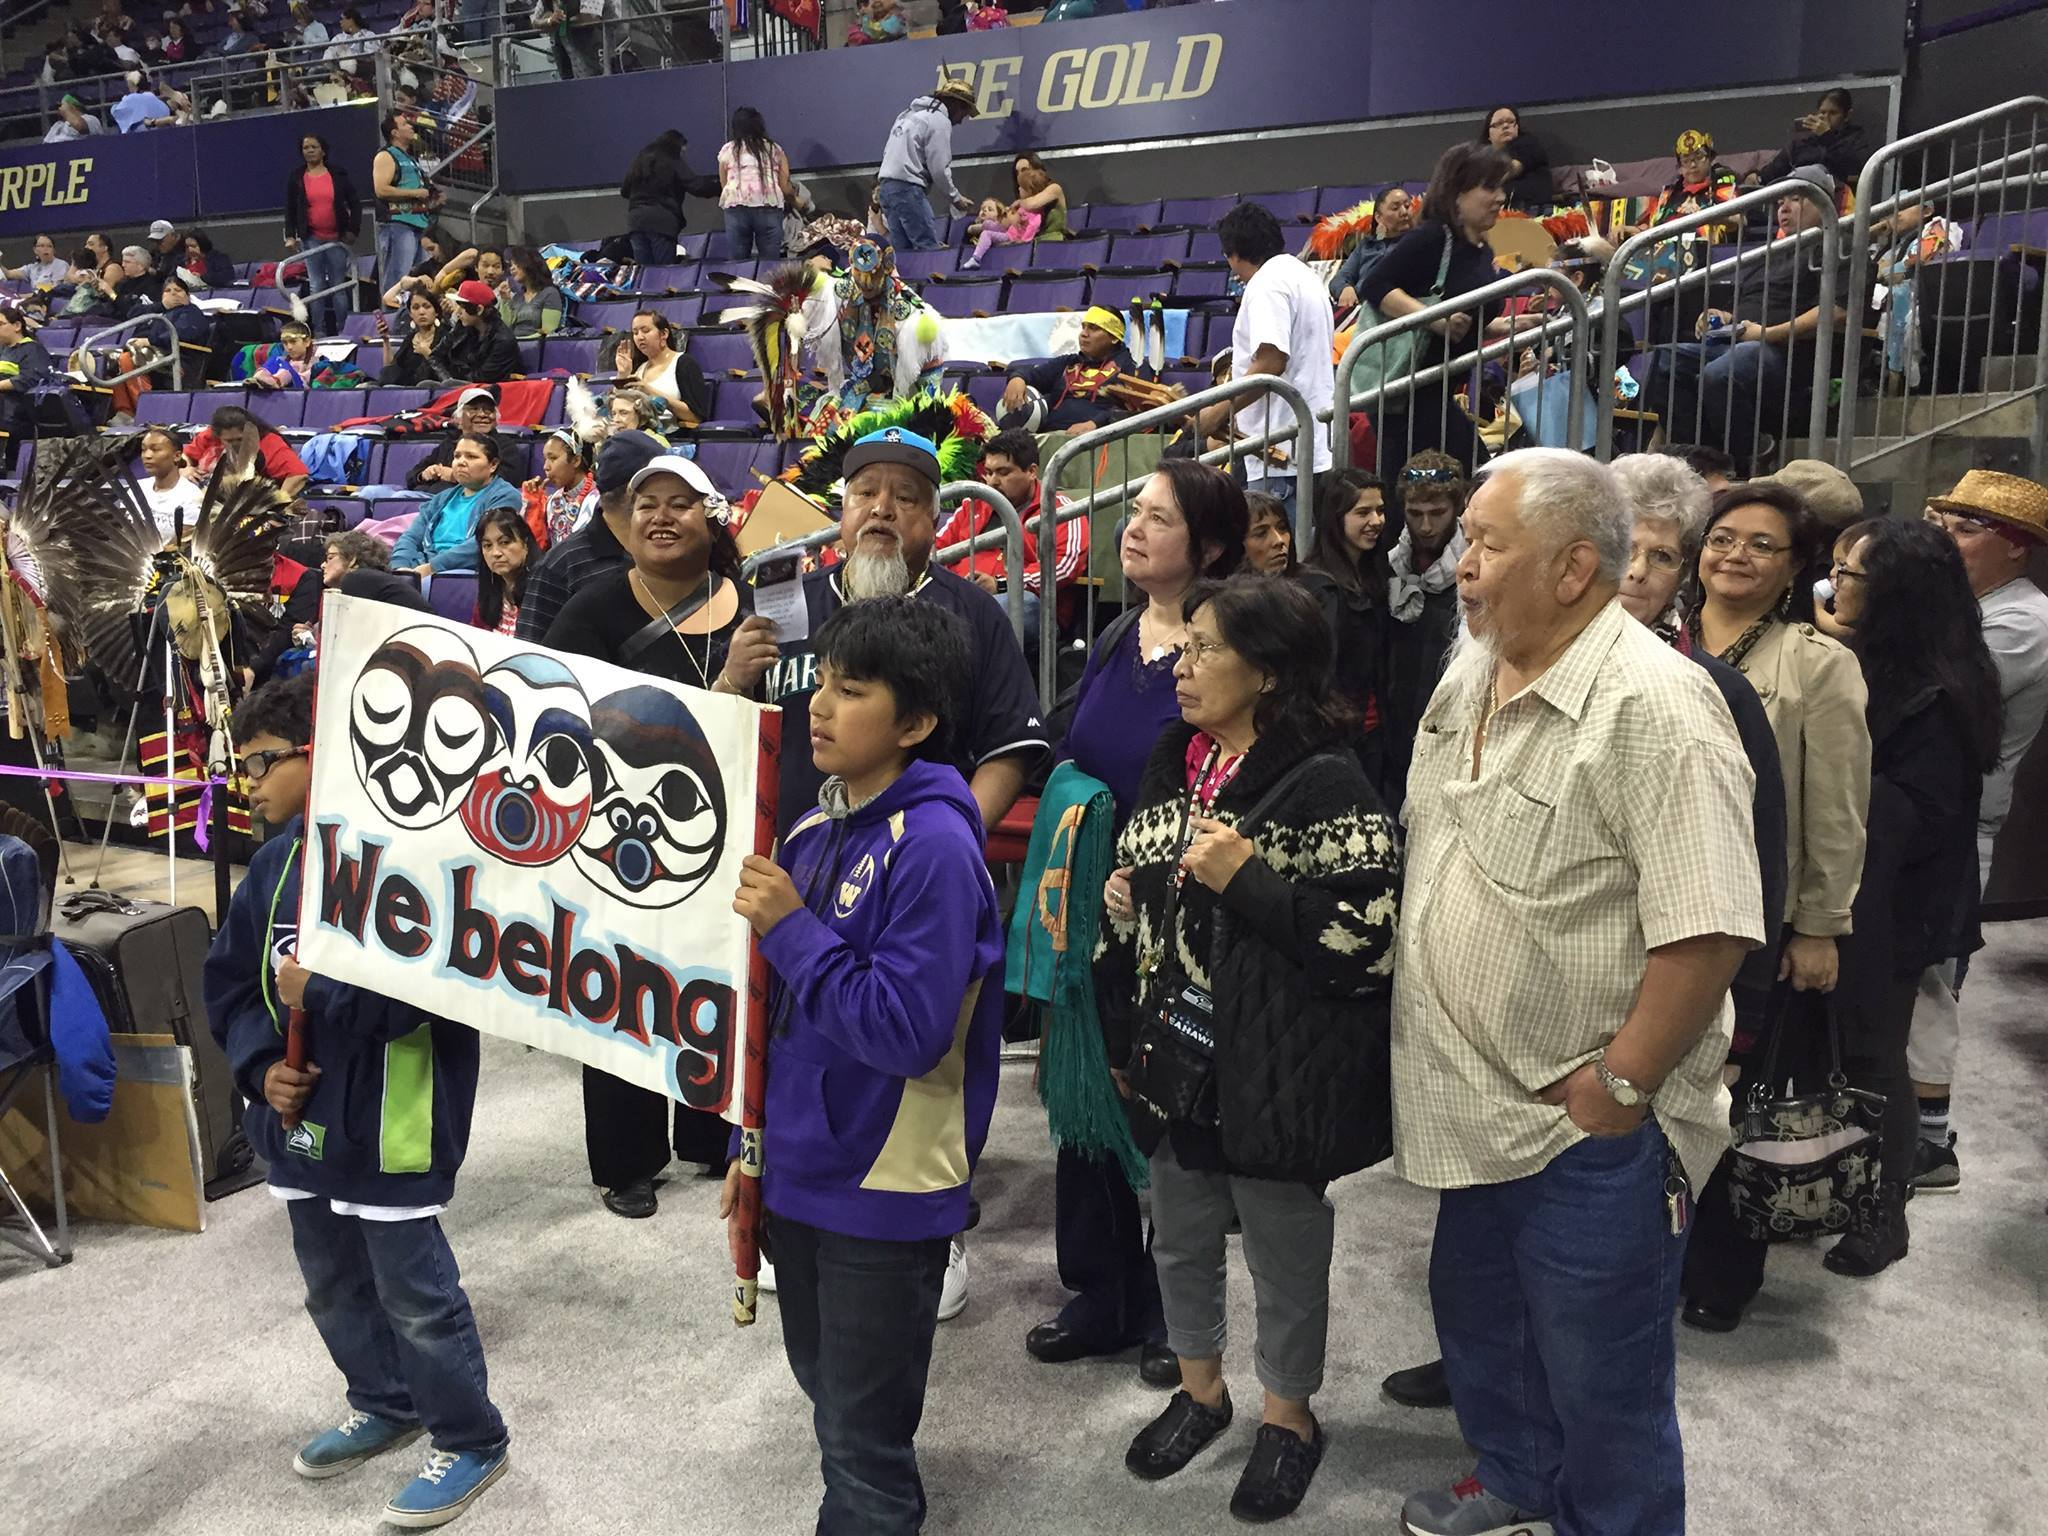 Peter d'Errico: Nooksack Tribe fuels bad stereotypes about courts